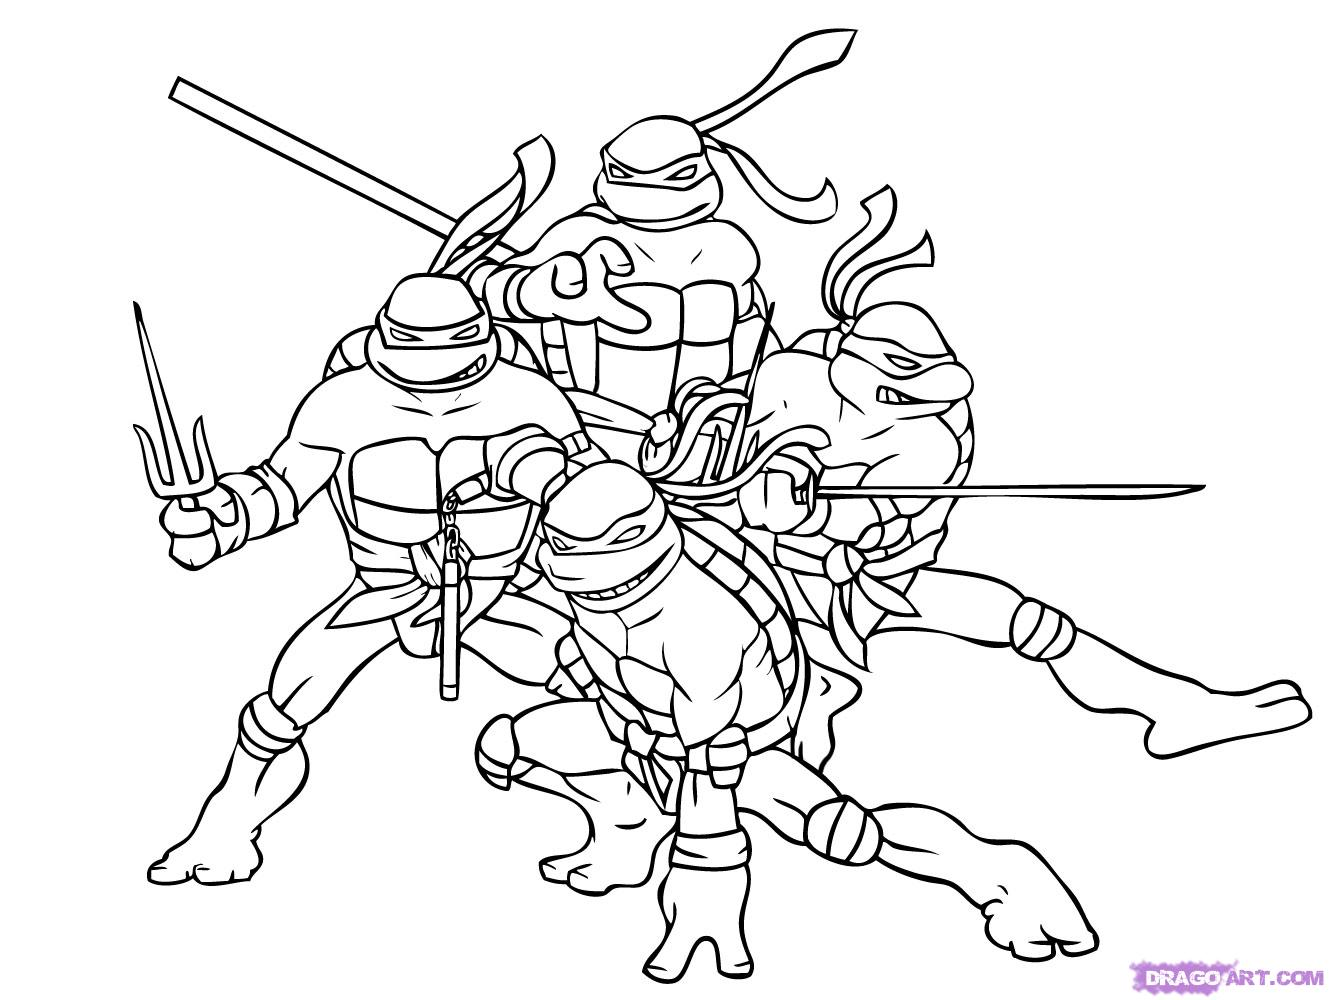 online coloring pages ninja turtles - photo#2